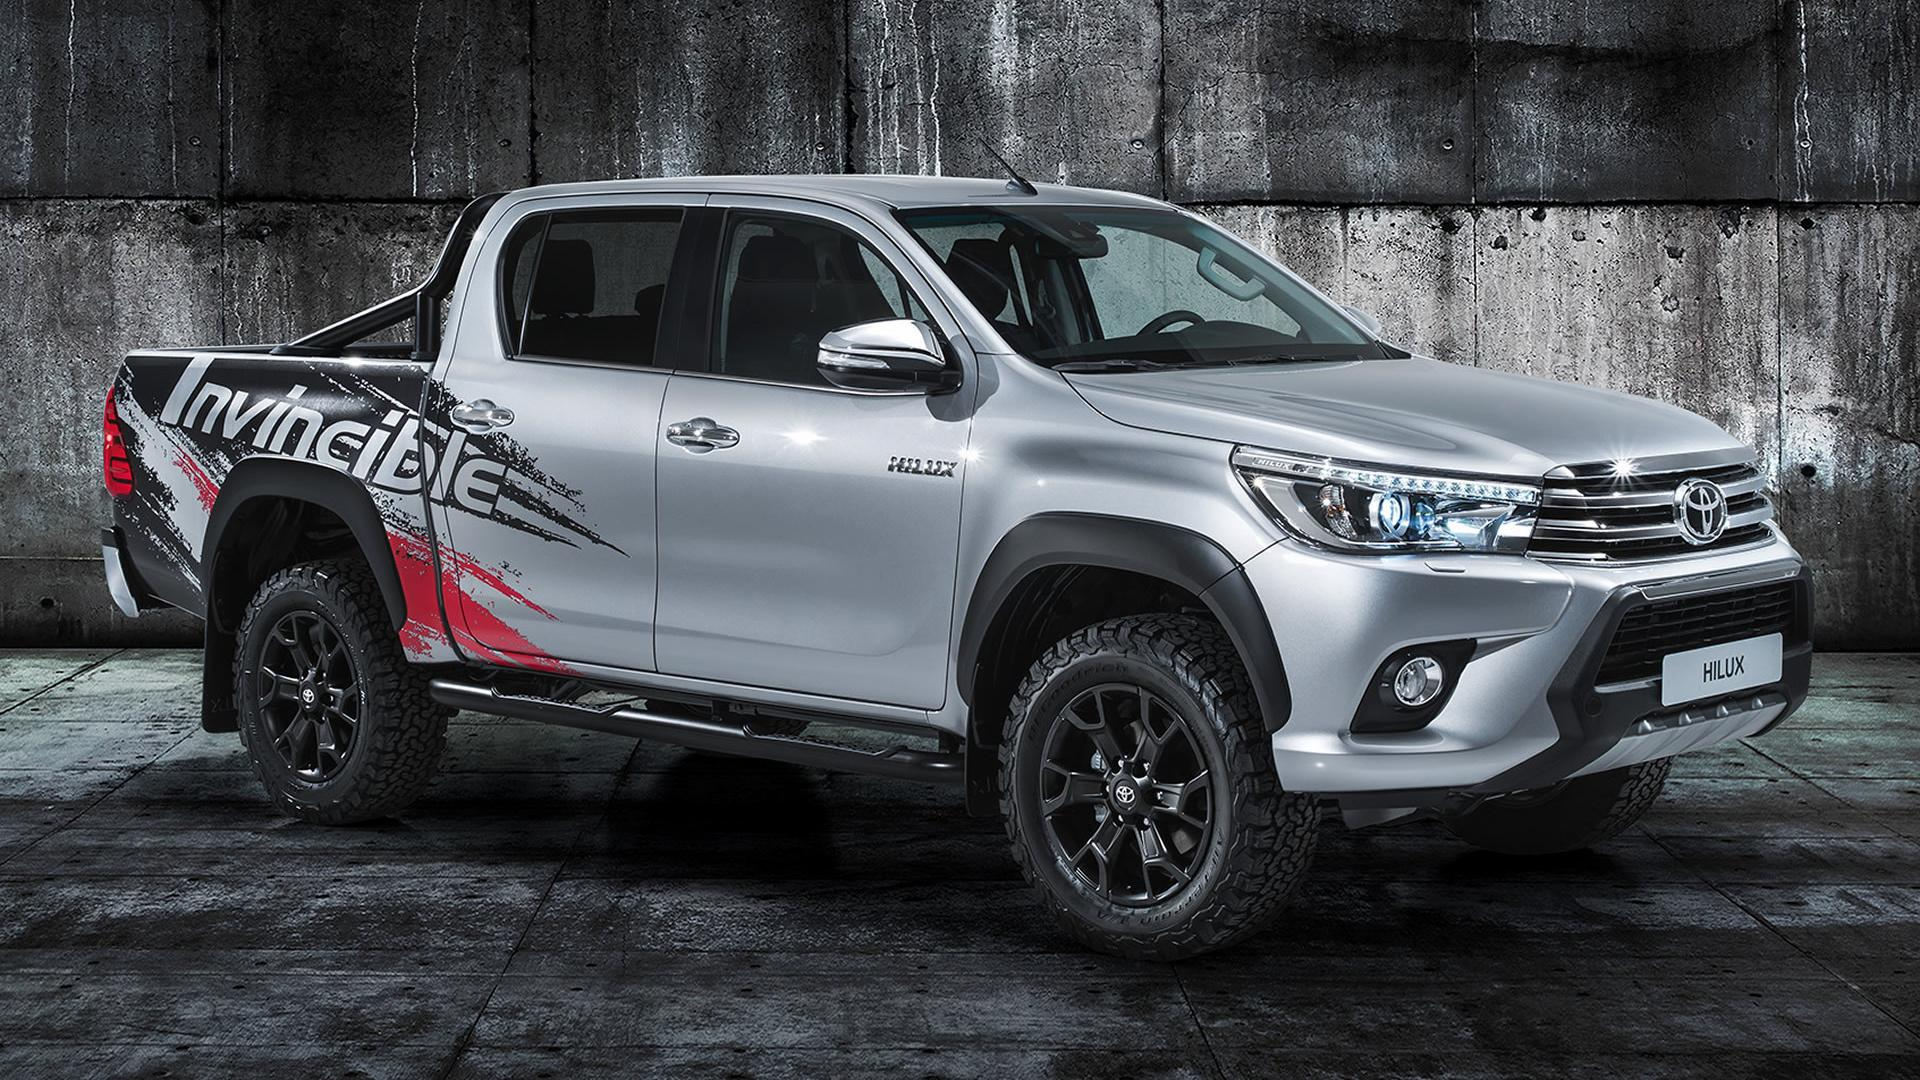 Hilux Wallpaper - Toyota Hilux 2017 , HD Wallpaper & Backgrounds